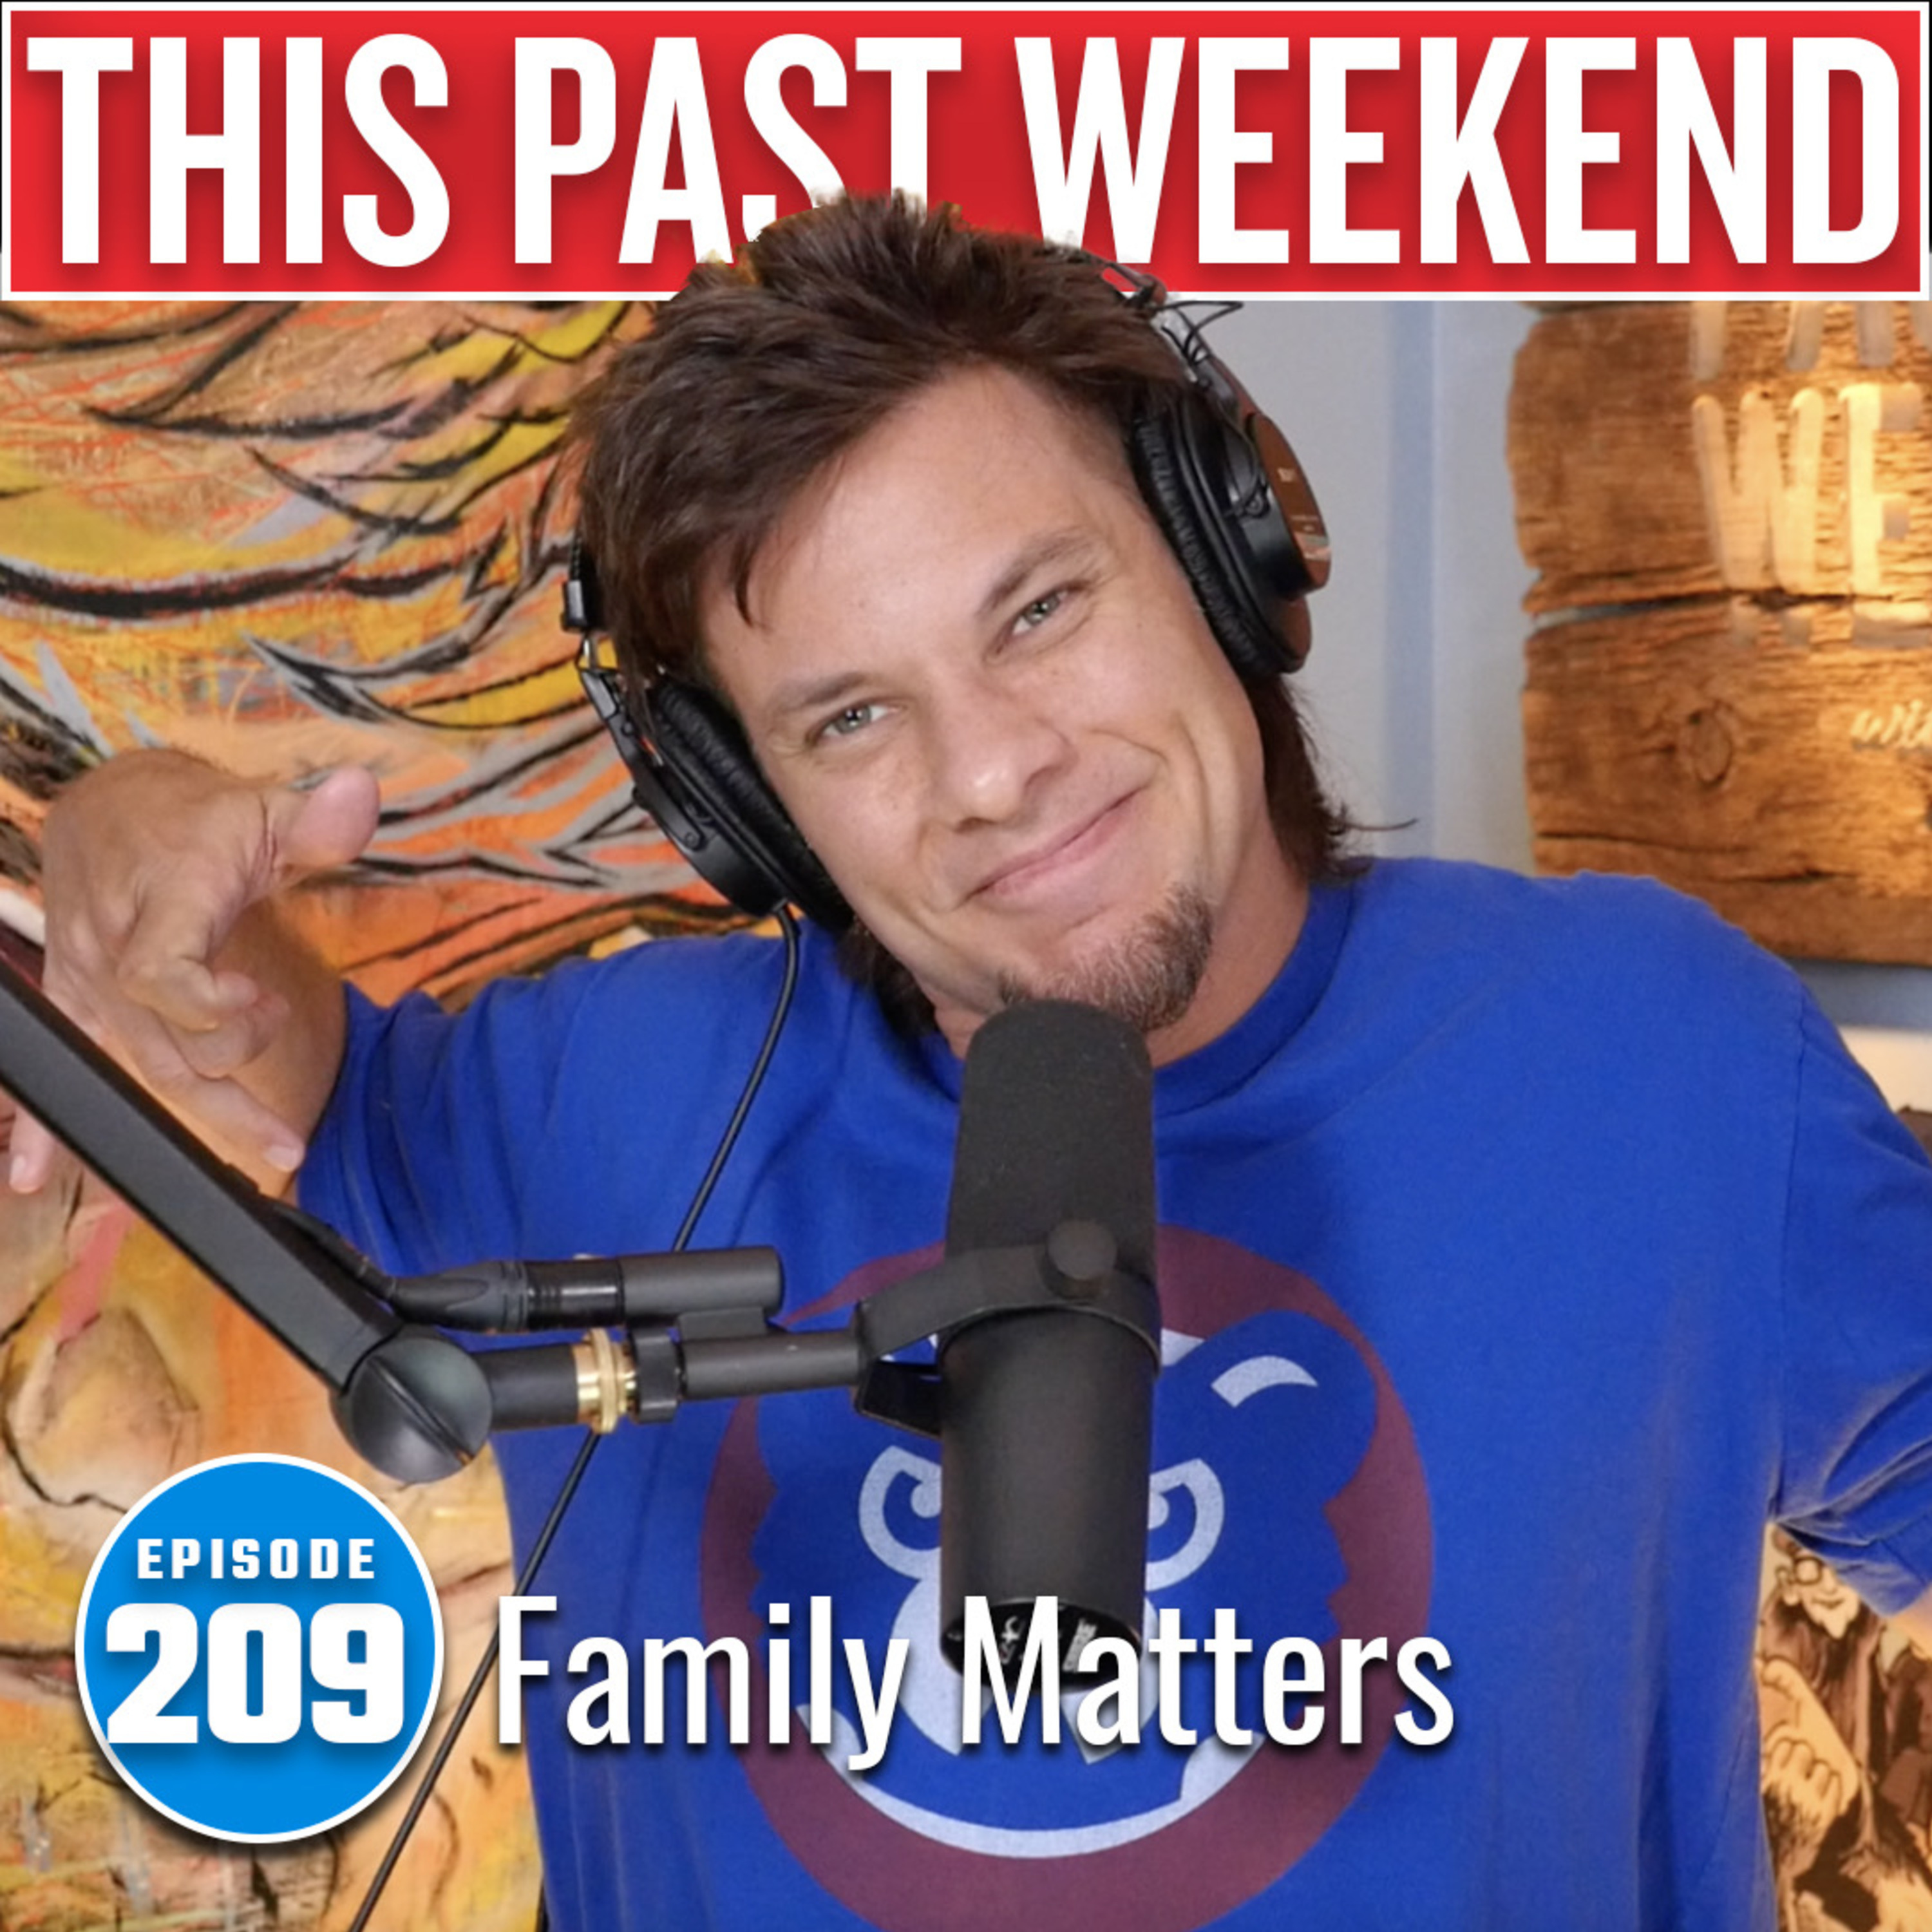 Family Matters | This Past Weekend #209